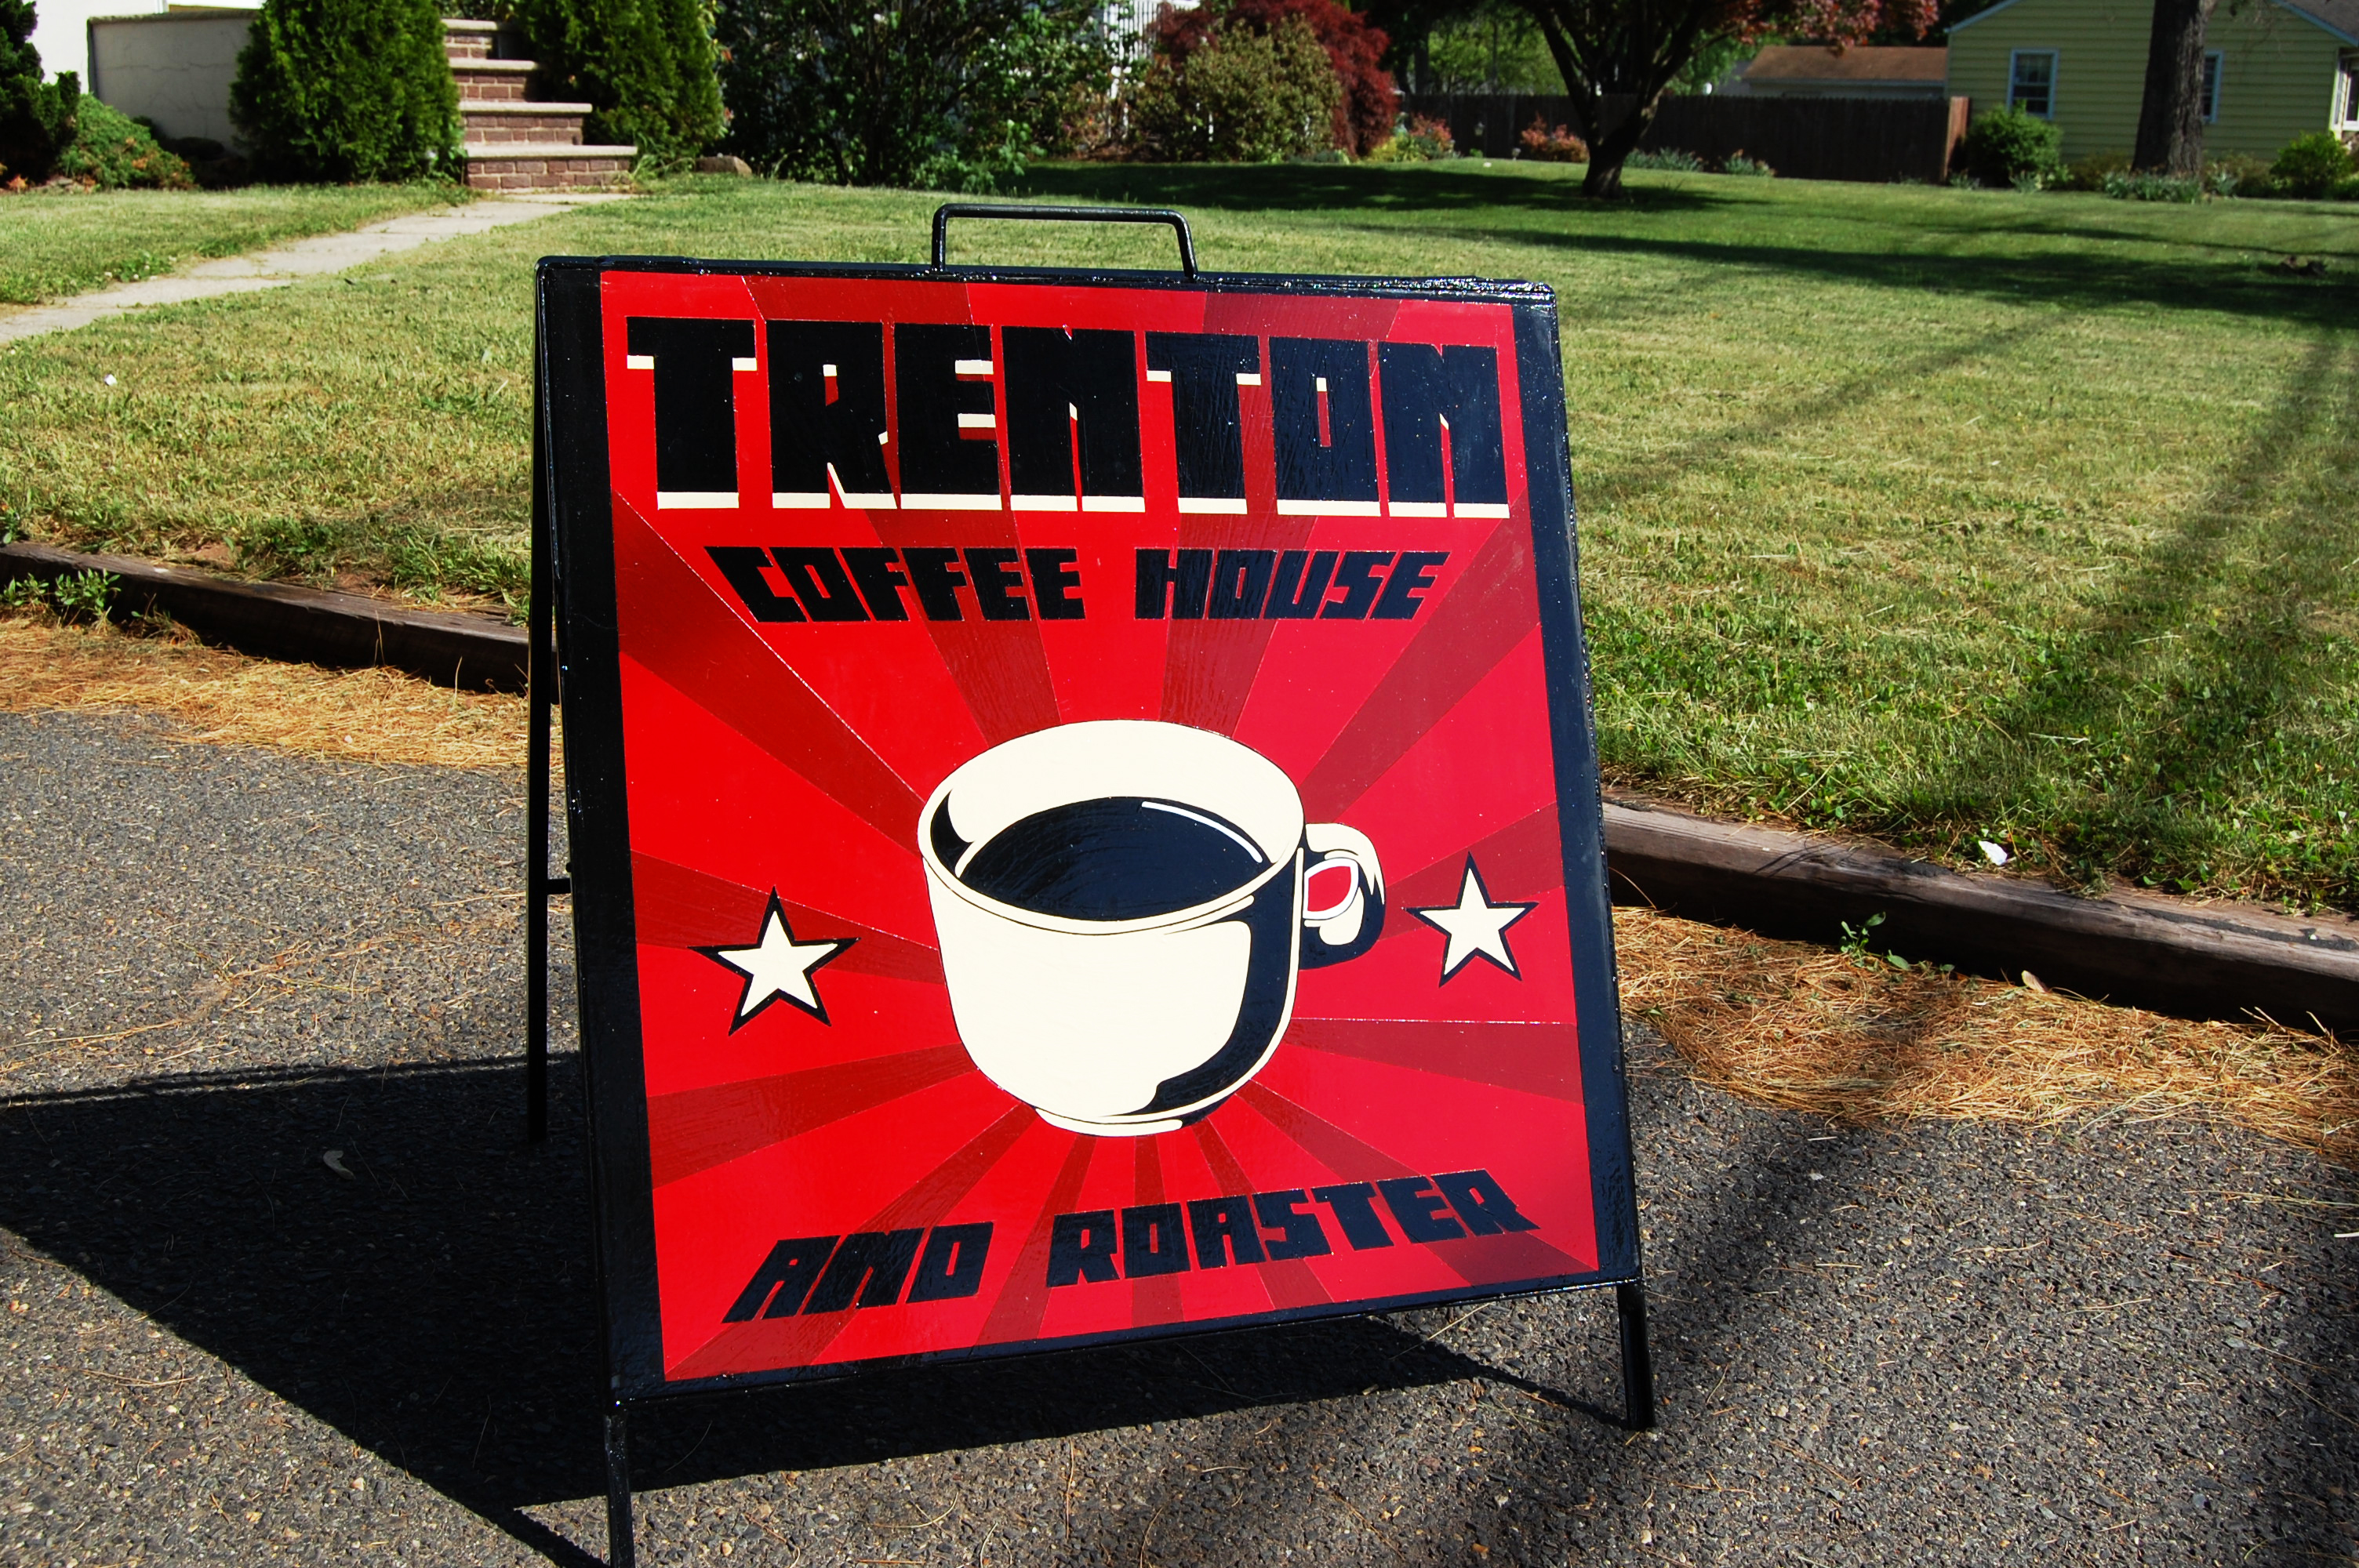 trenton coffee house & roaster